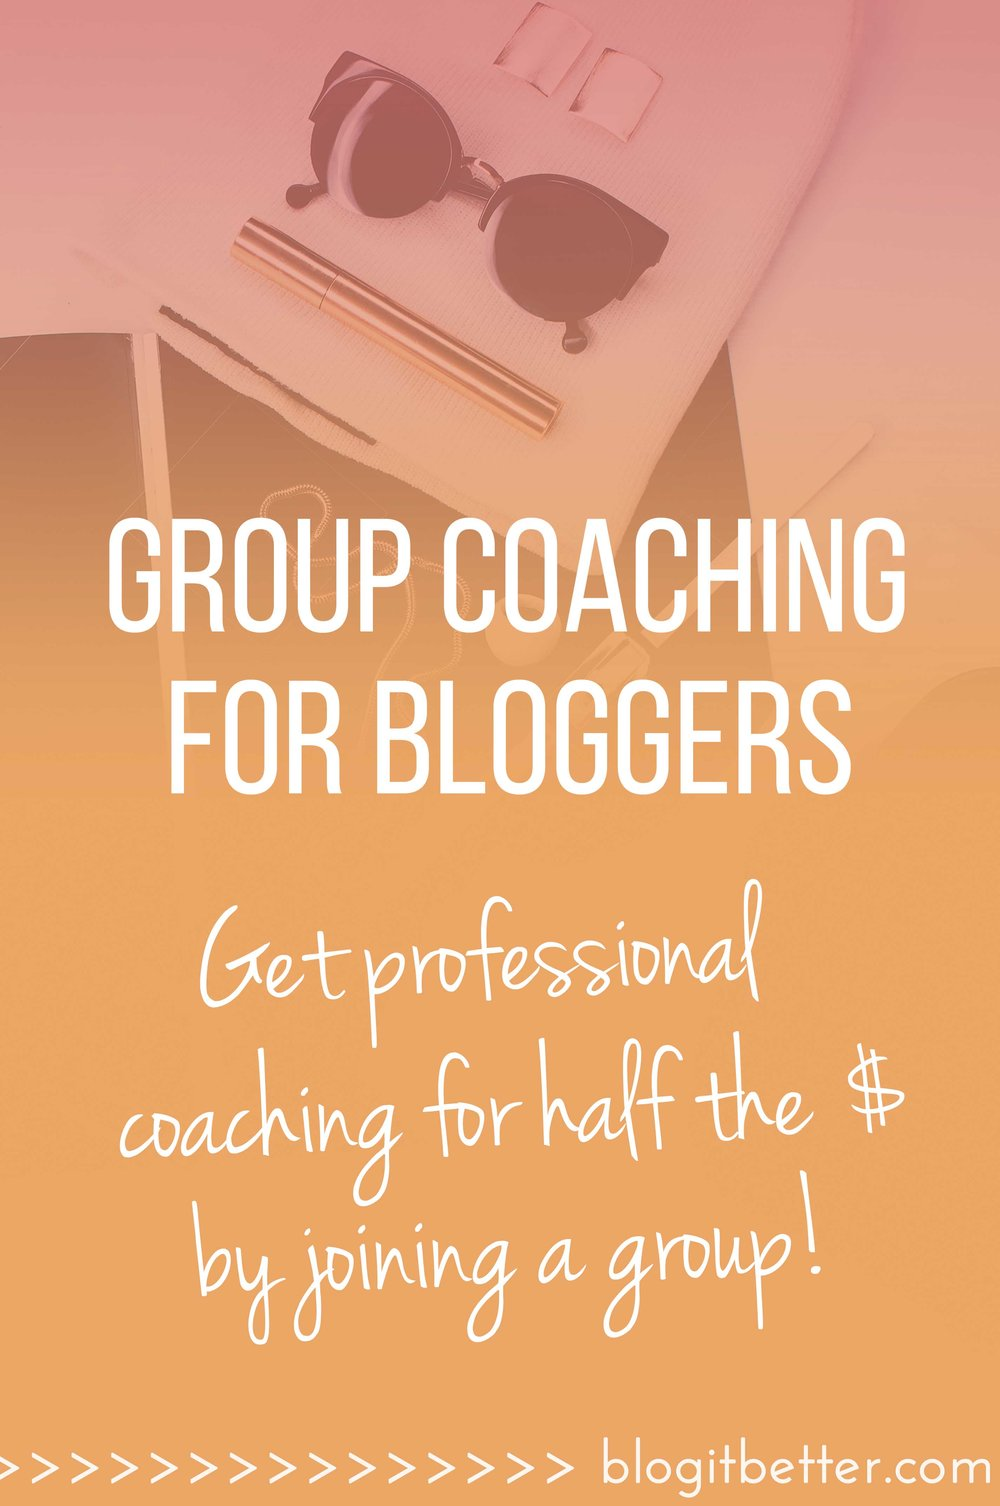 If individual professional blog coaching is out of your price range, you can still get the same quality guidance through group blog coaching!